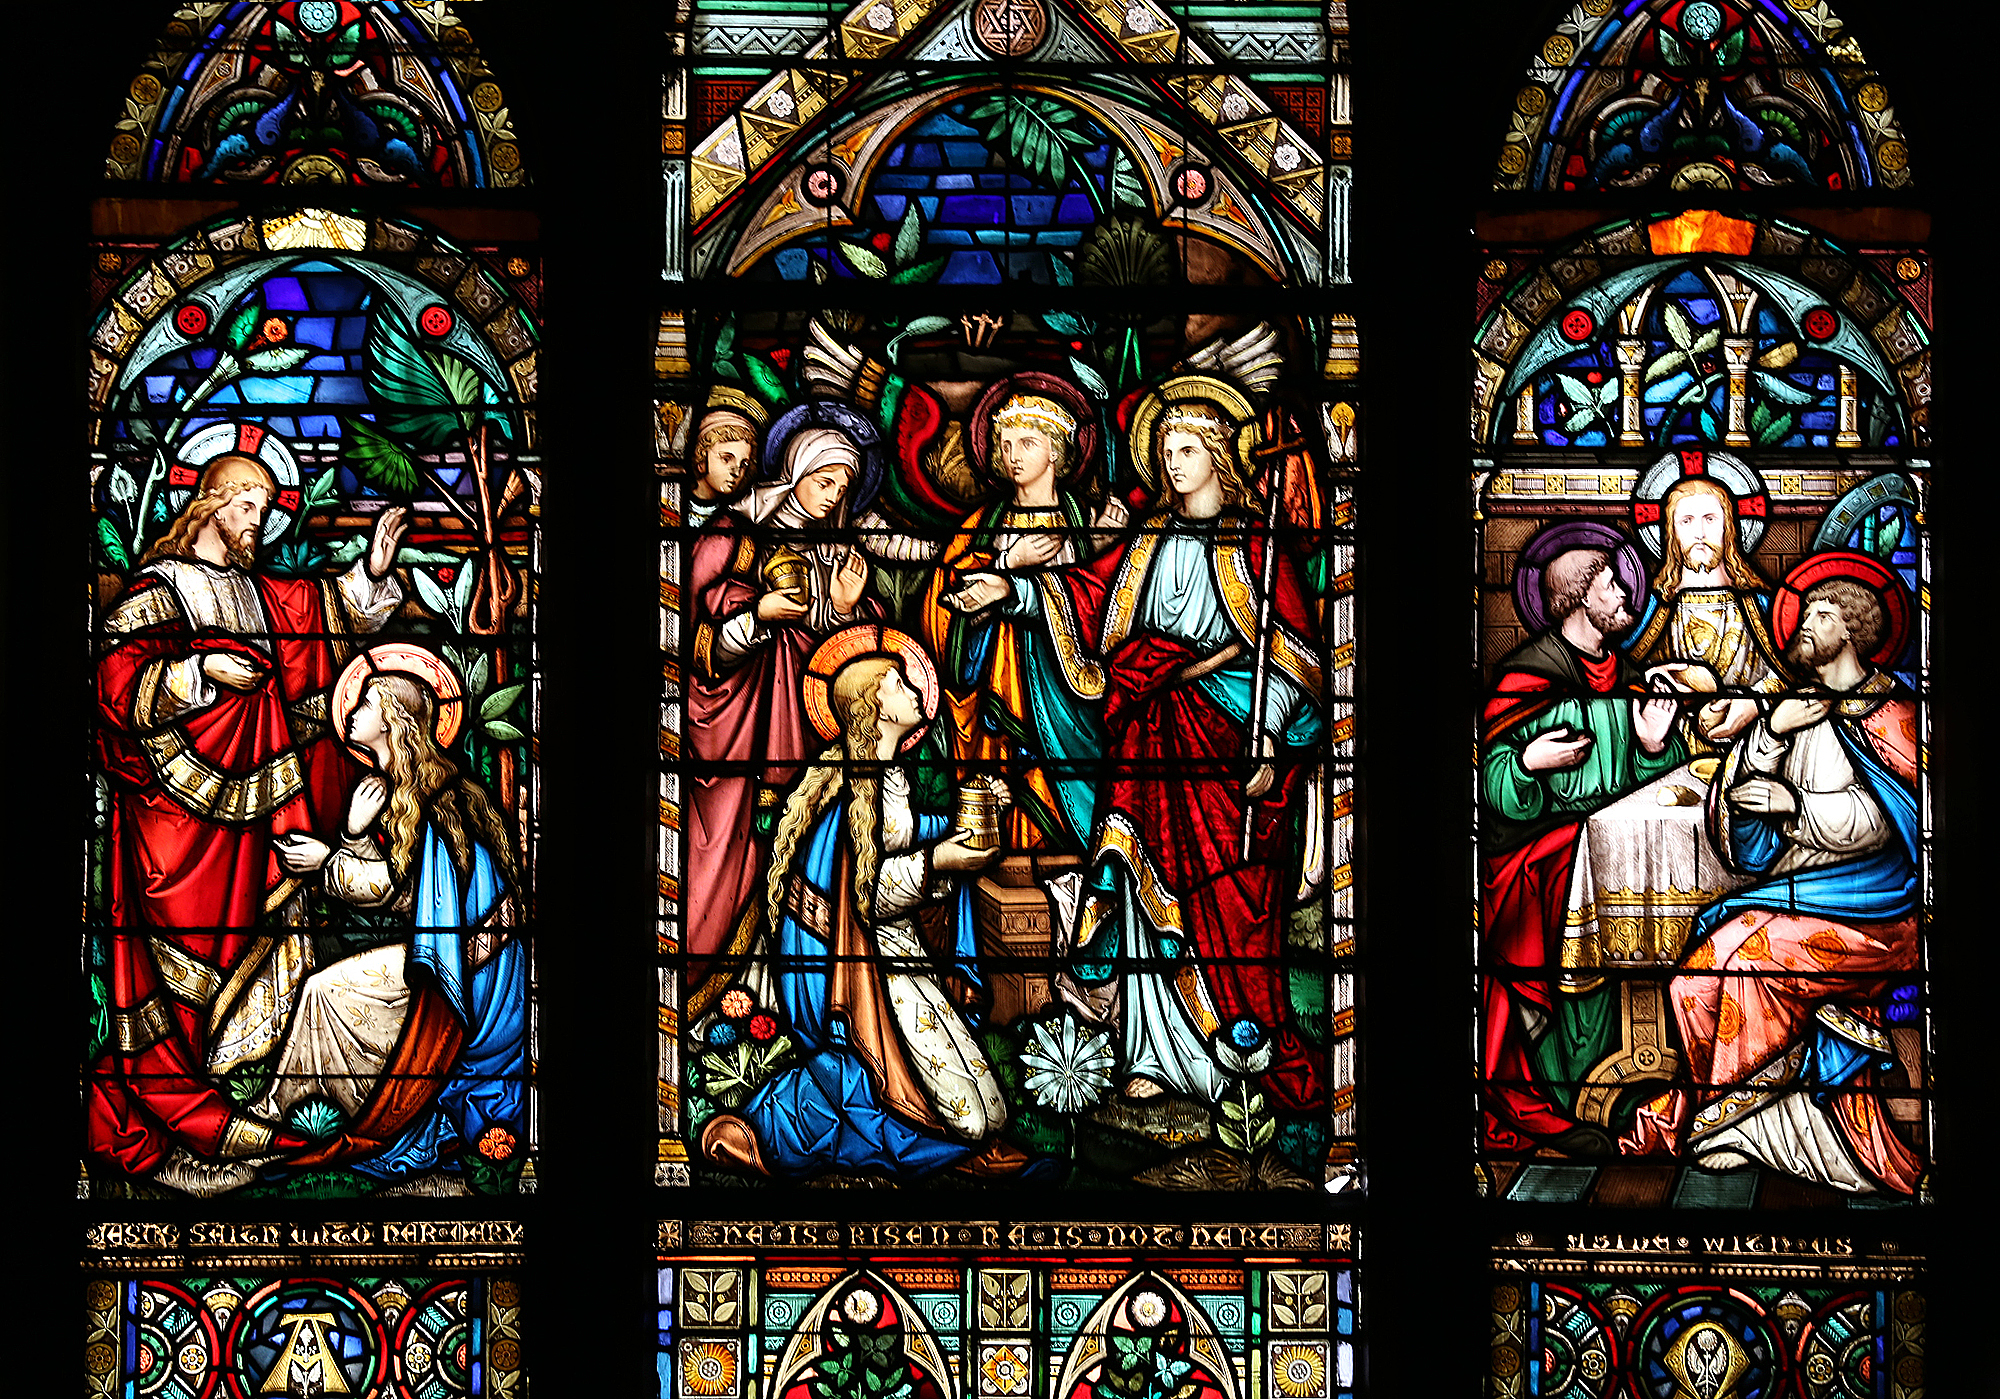 Slack and Booth stained glass window valued at over $1 million dollars.